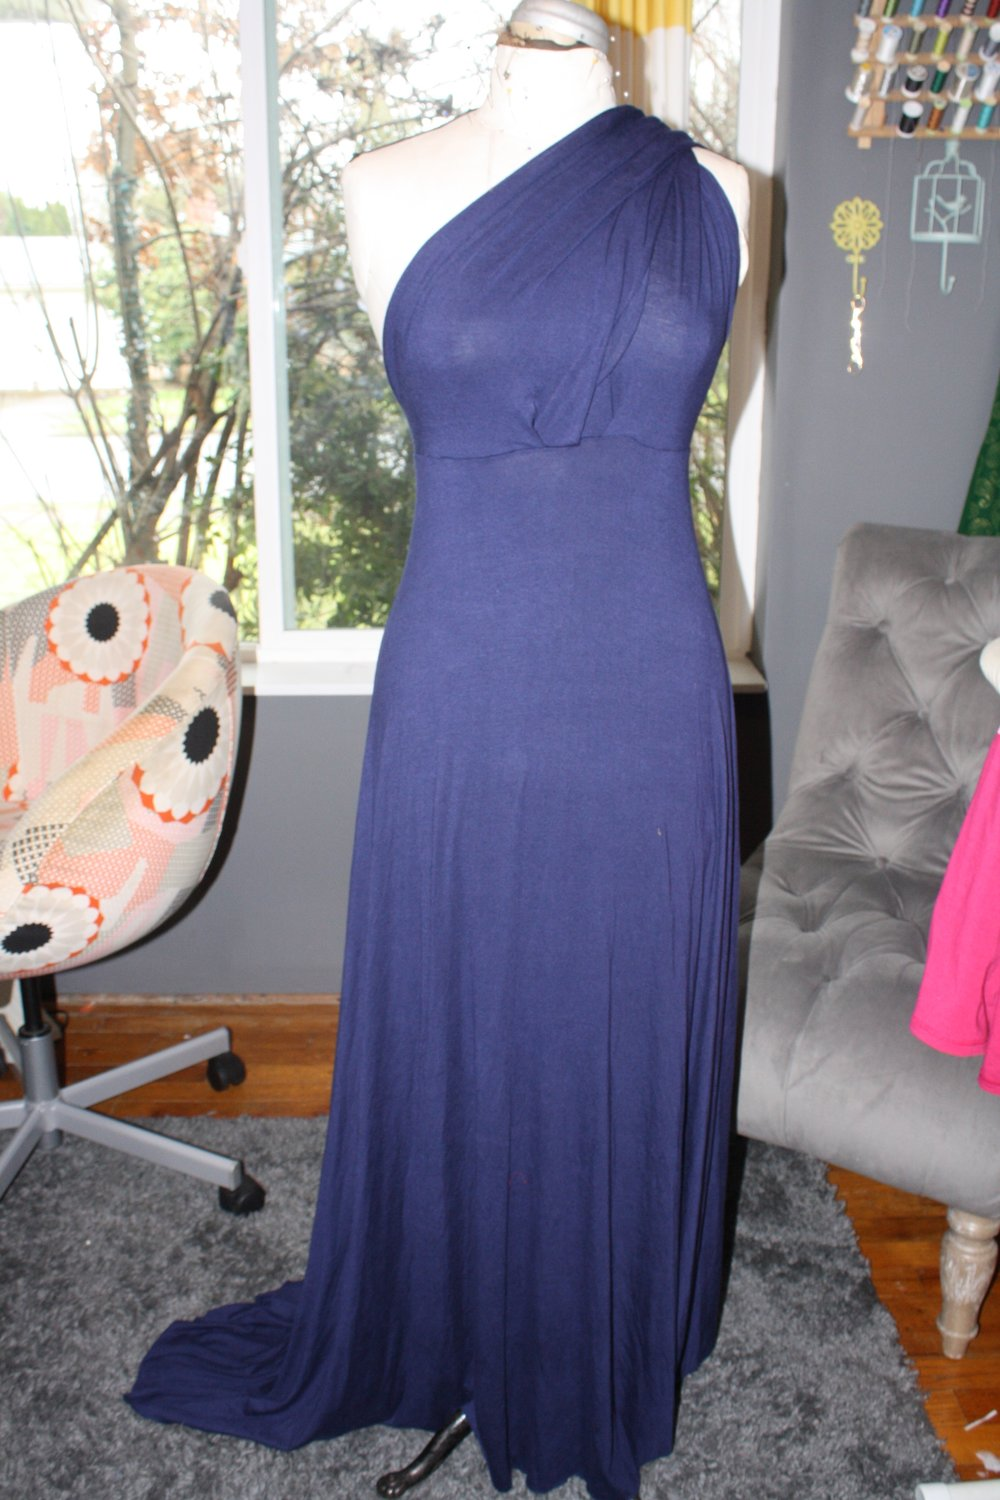 Front view of the dress hanging on my dress form.